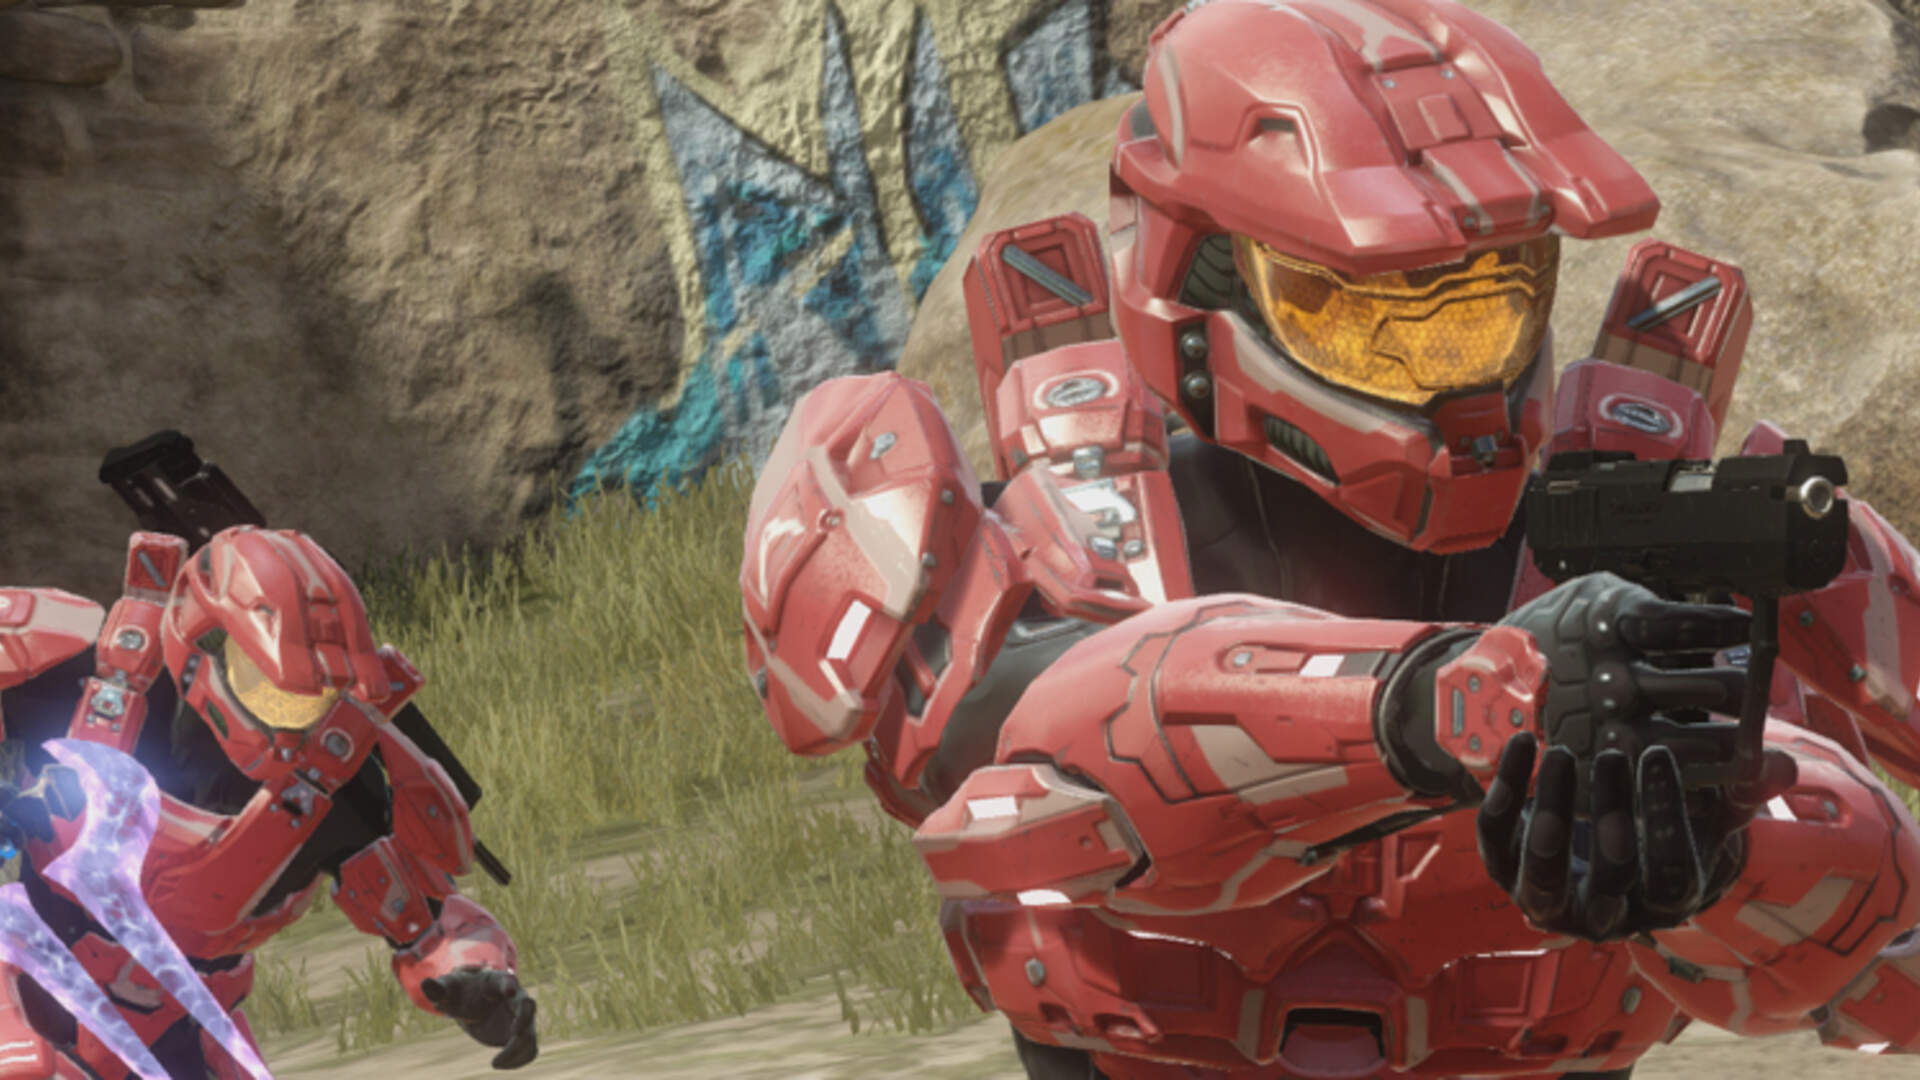 Halo: The Master Chief Collection Xbox One Review: An Embarrassment of Riches